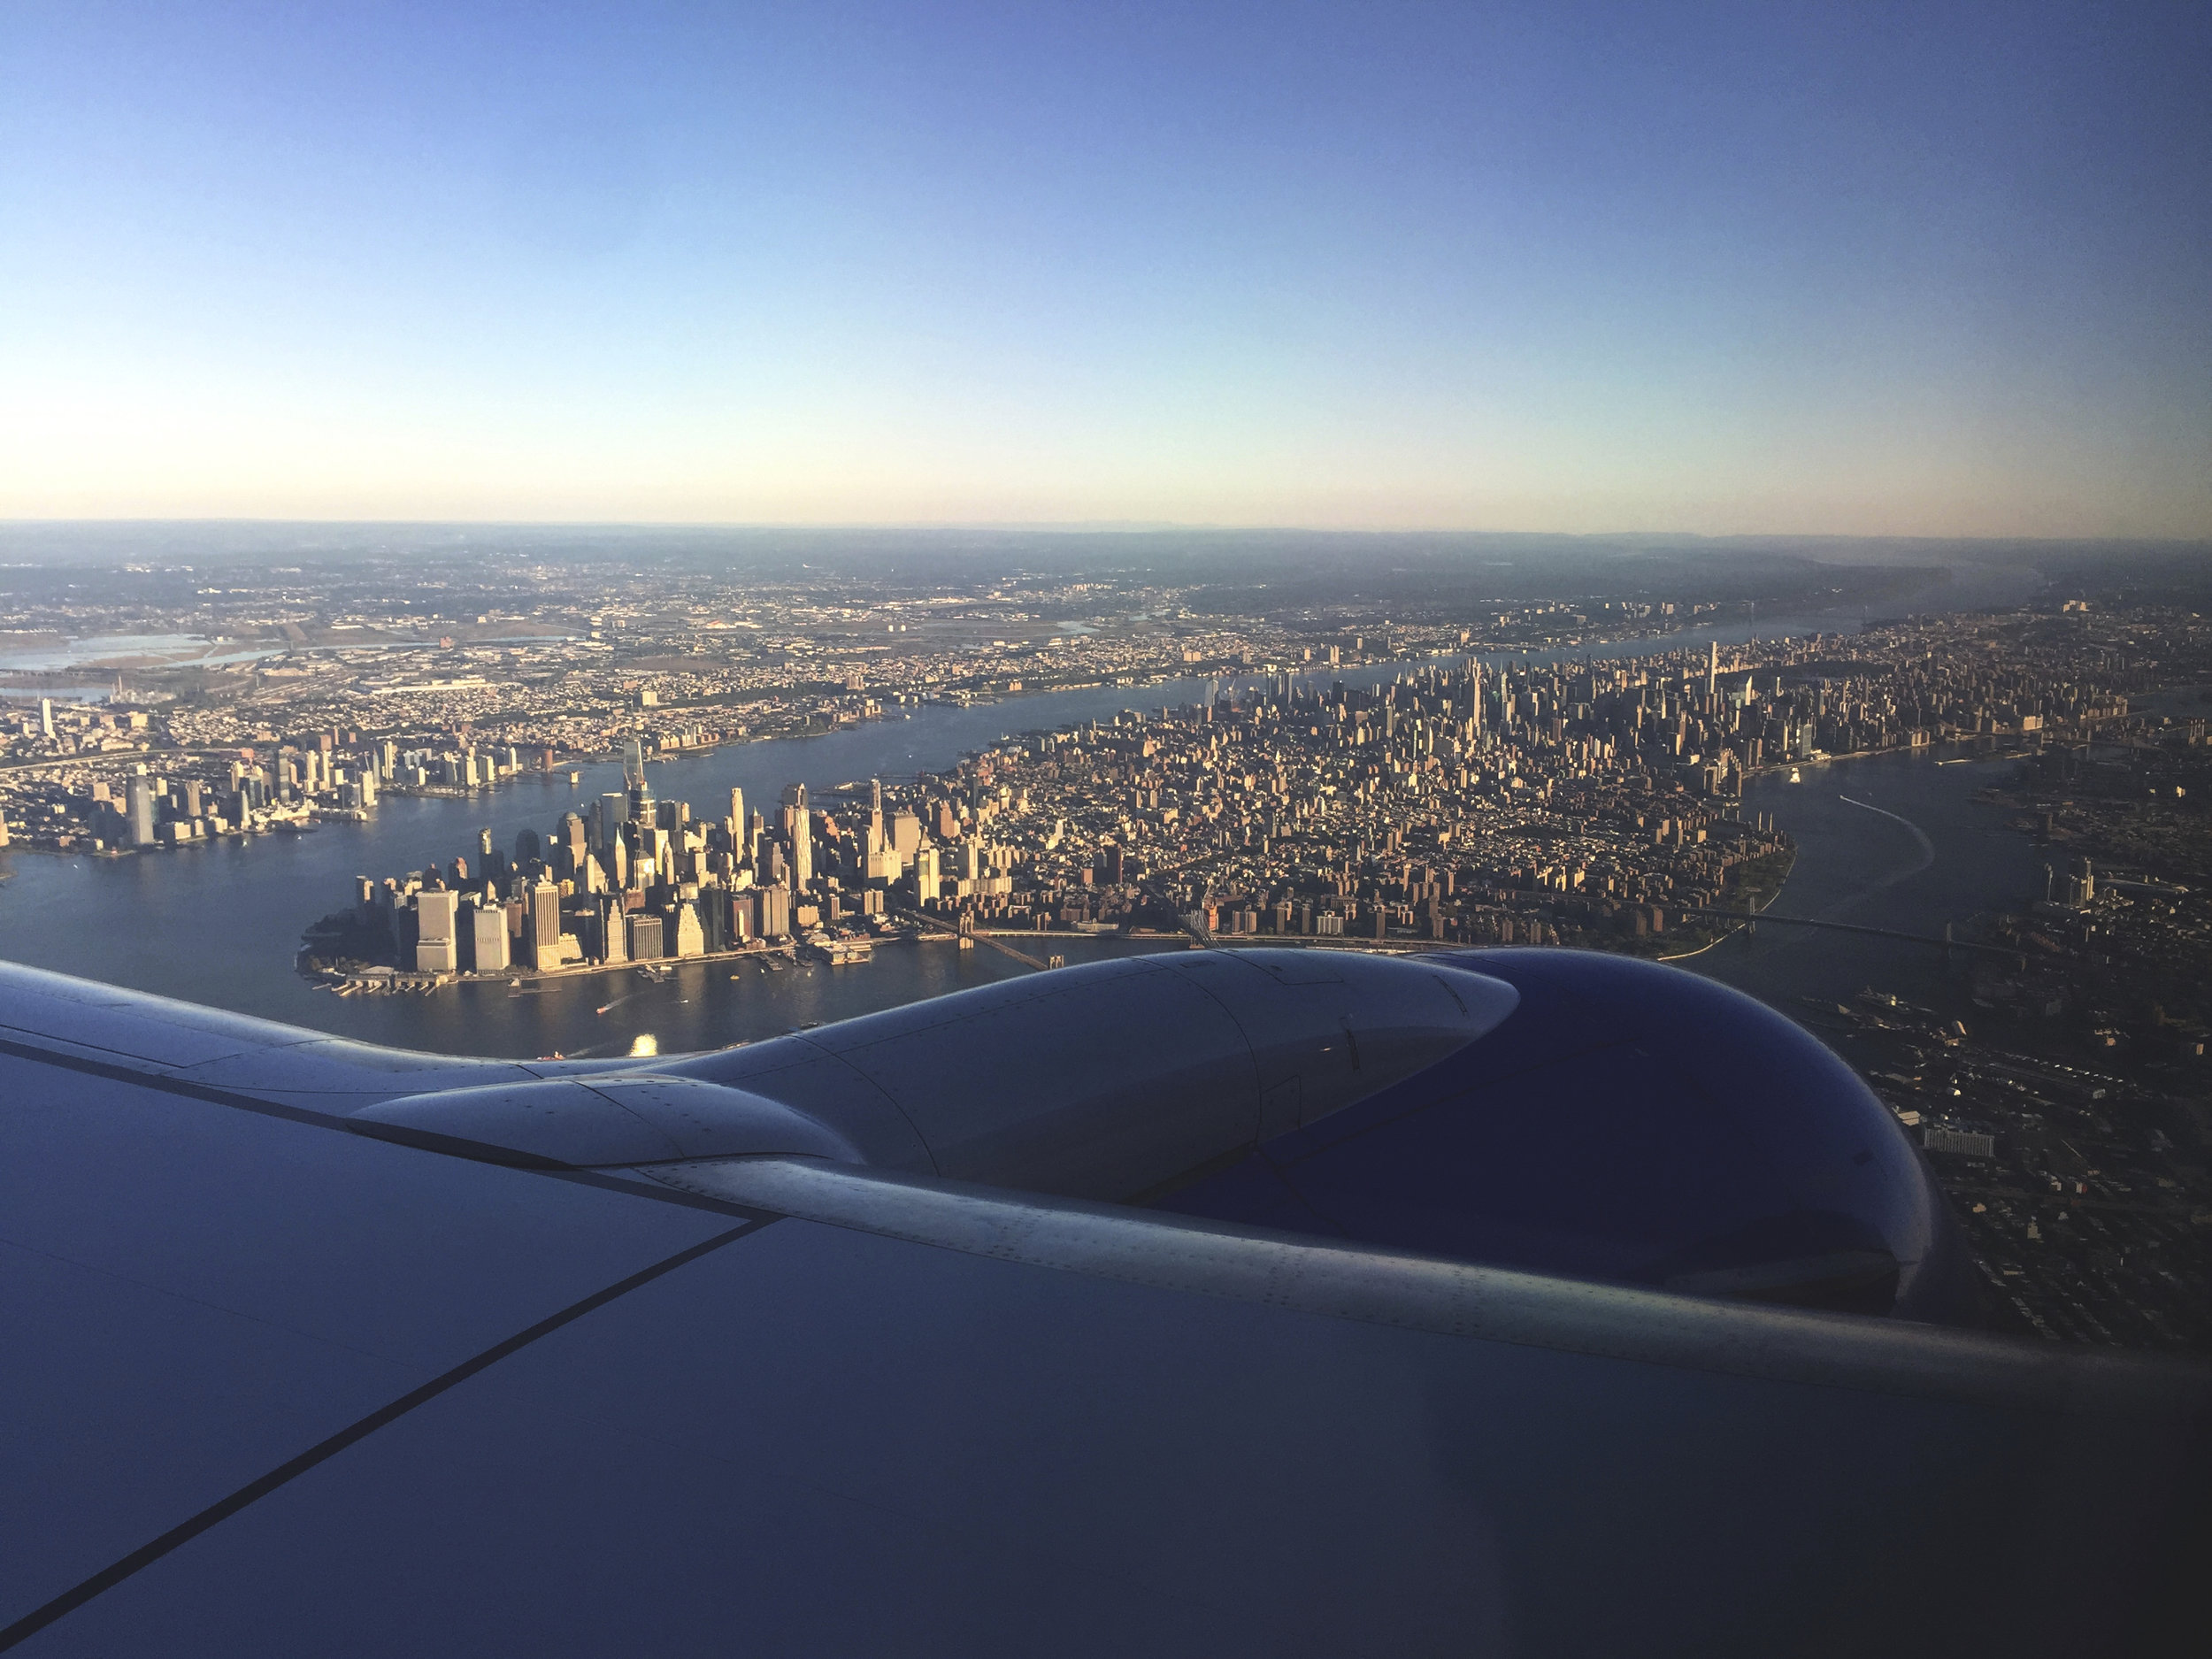 Flying into the city and recognizing all the landmark buildings